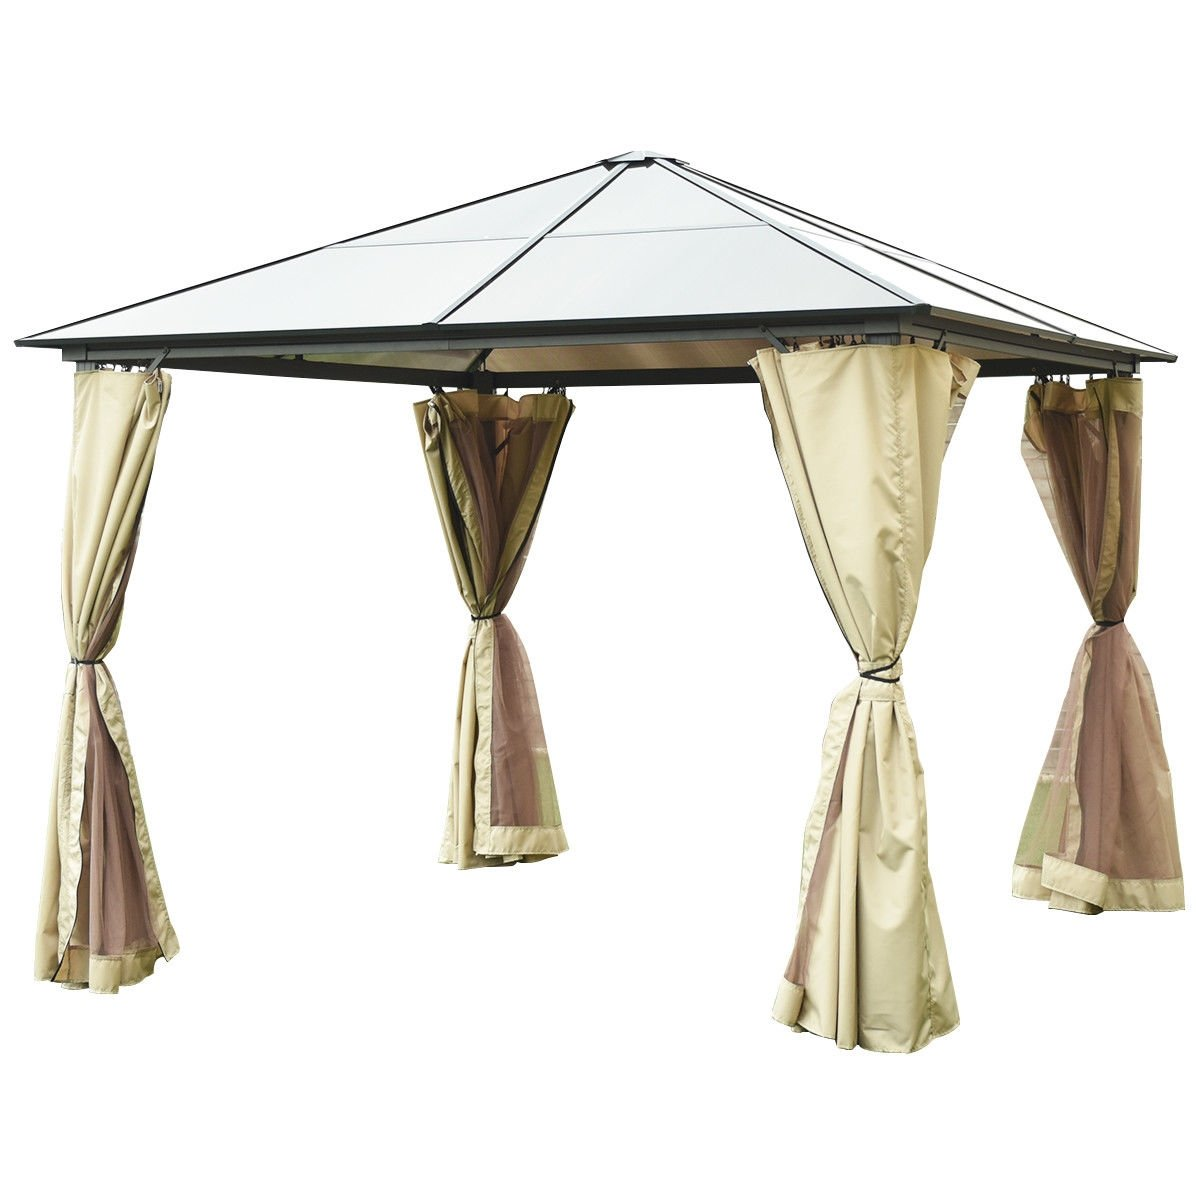 10 X 10 Gazebo Canopy Shelter Patio Party Tent Gazebo Canopy Canopy Shelter Canopy Tent